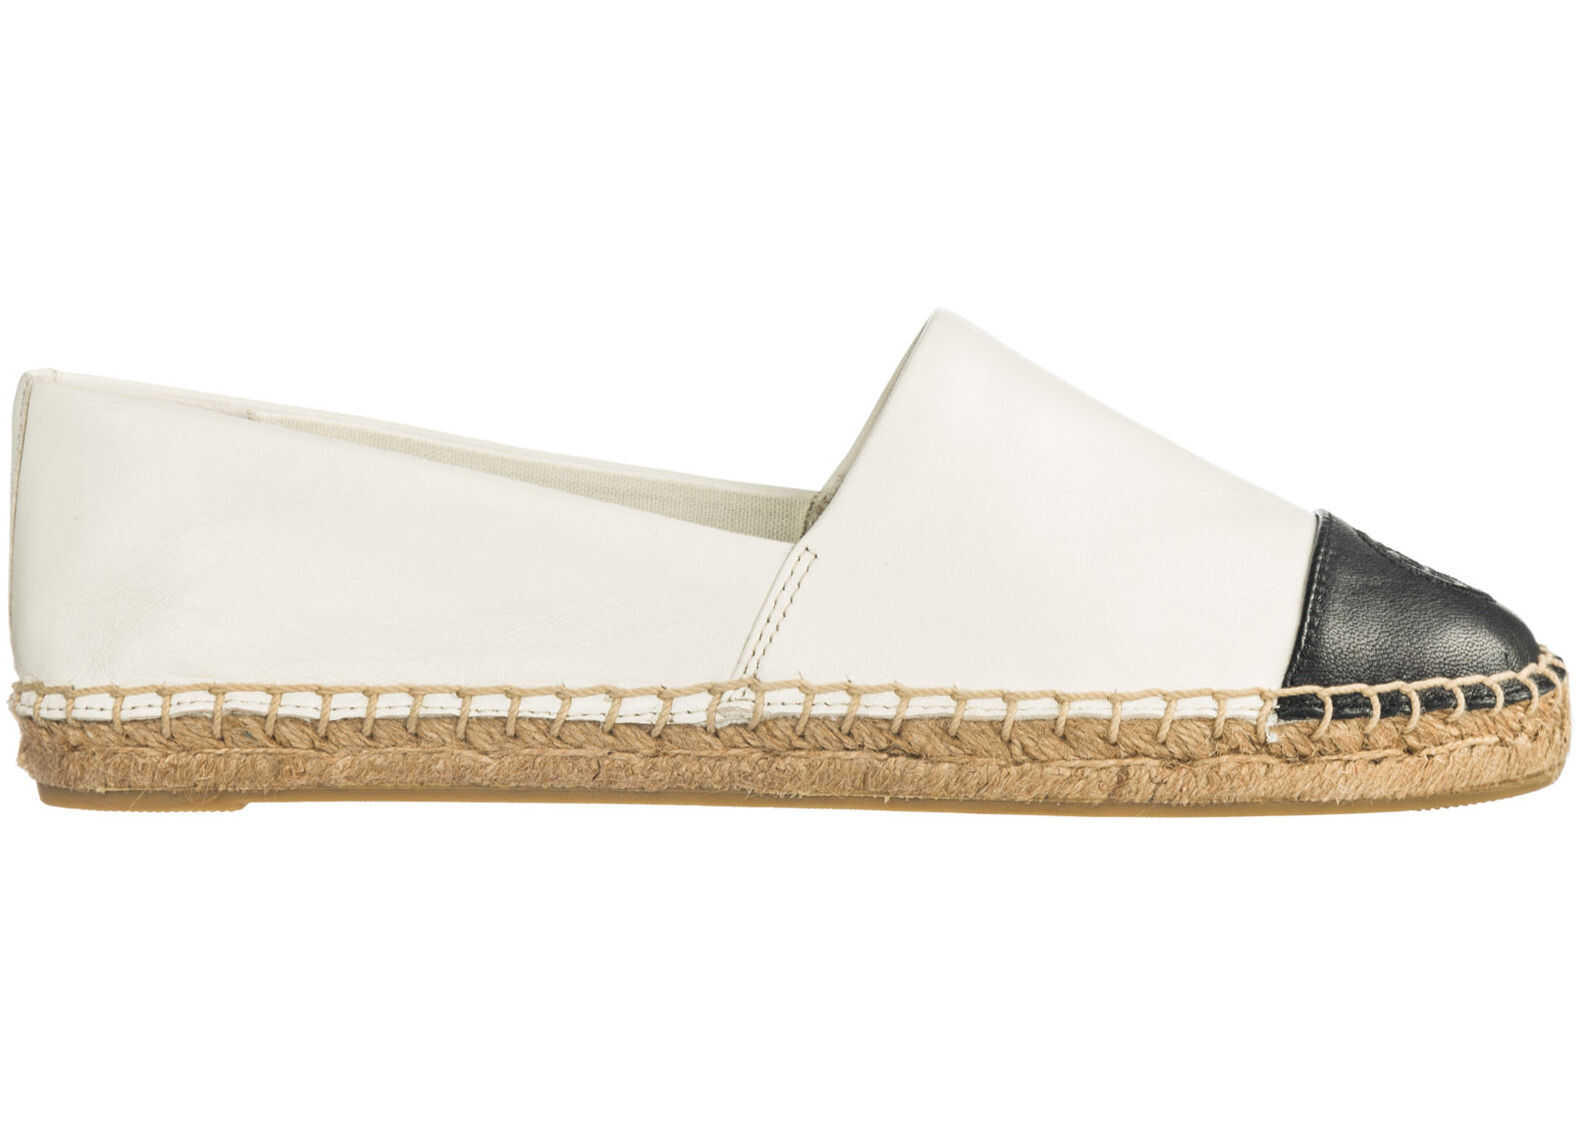 Tory Burch On Shoes White